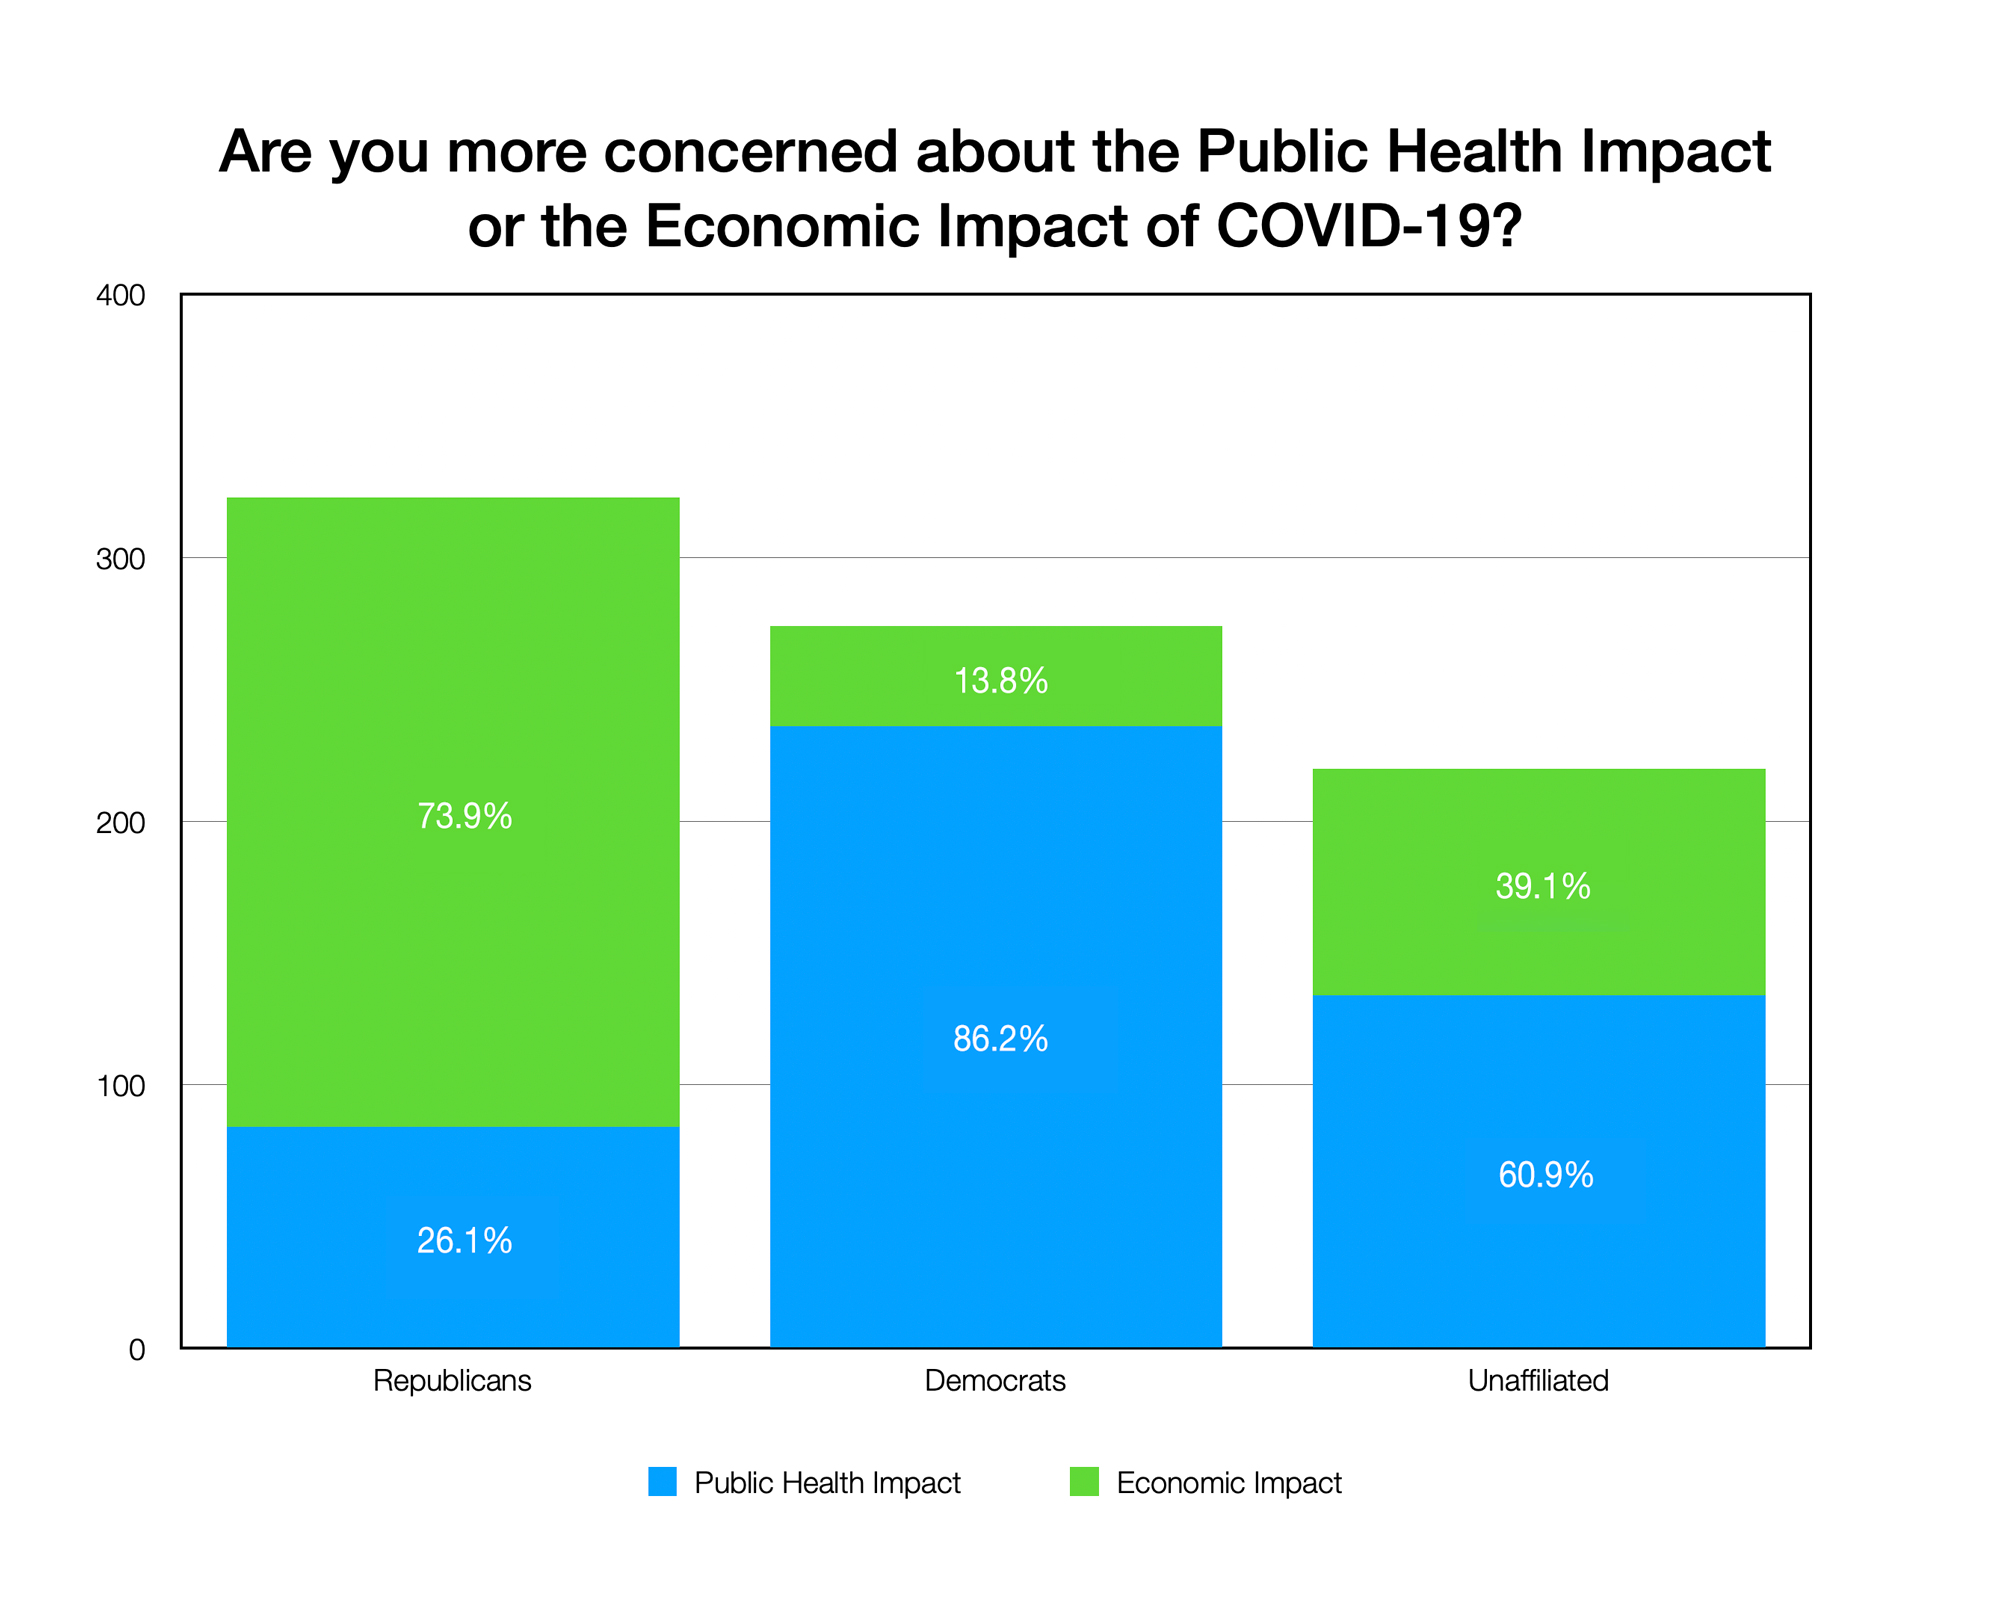 GRAPH: Are you more concerned about the Public Health Impactor the Economic Impact of COVID-19? (By Party)